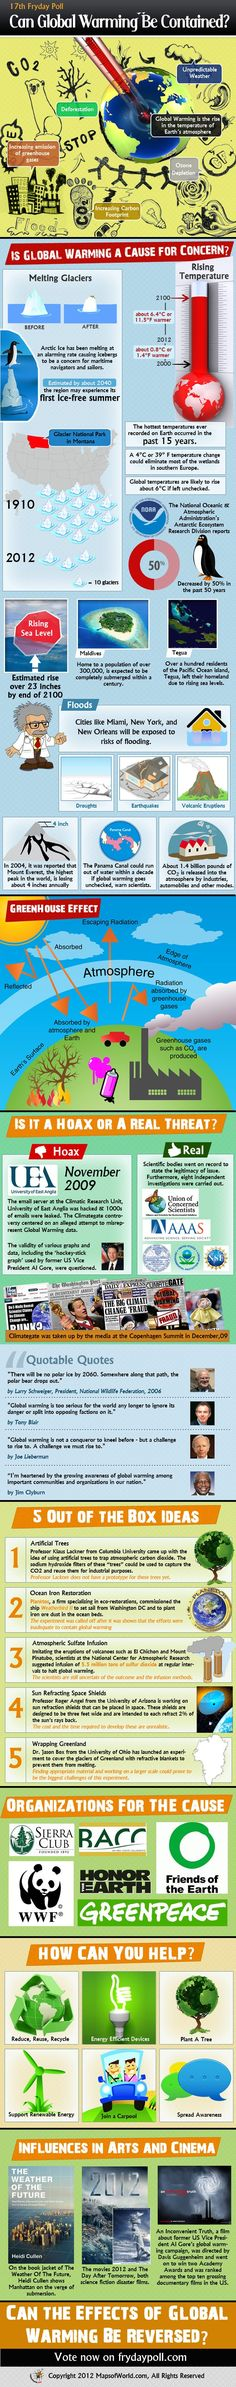 Can Global Warming Be Reversed? – iNFOGRAPHiCs MANiA Can-Global-Warming-Be-Contained-infographic Find always more on infographicsmania… Global Warming Climate Change, Effects Of Global Warming, Science Lessons, Life Science, Science Fair, Evolution, Greenhouse Effect, About Climate Change, Middle School Science